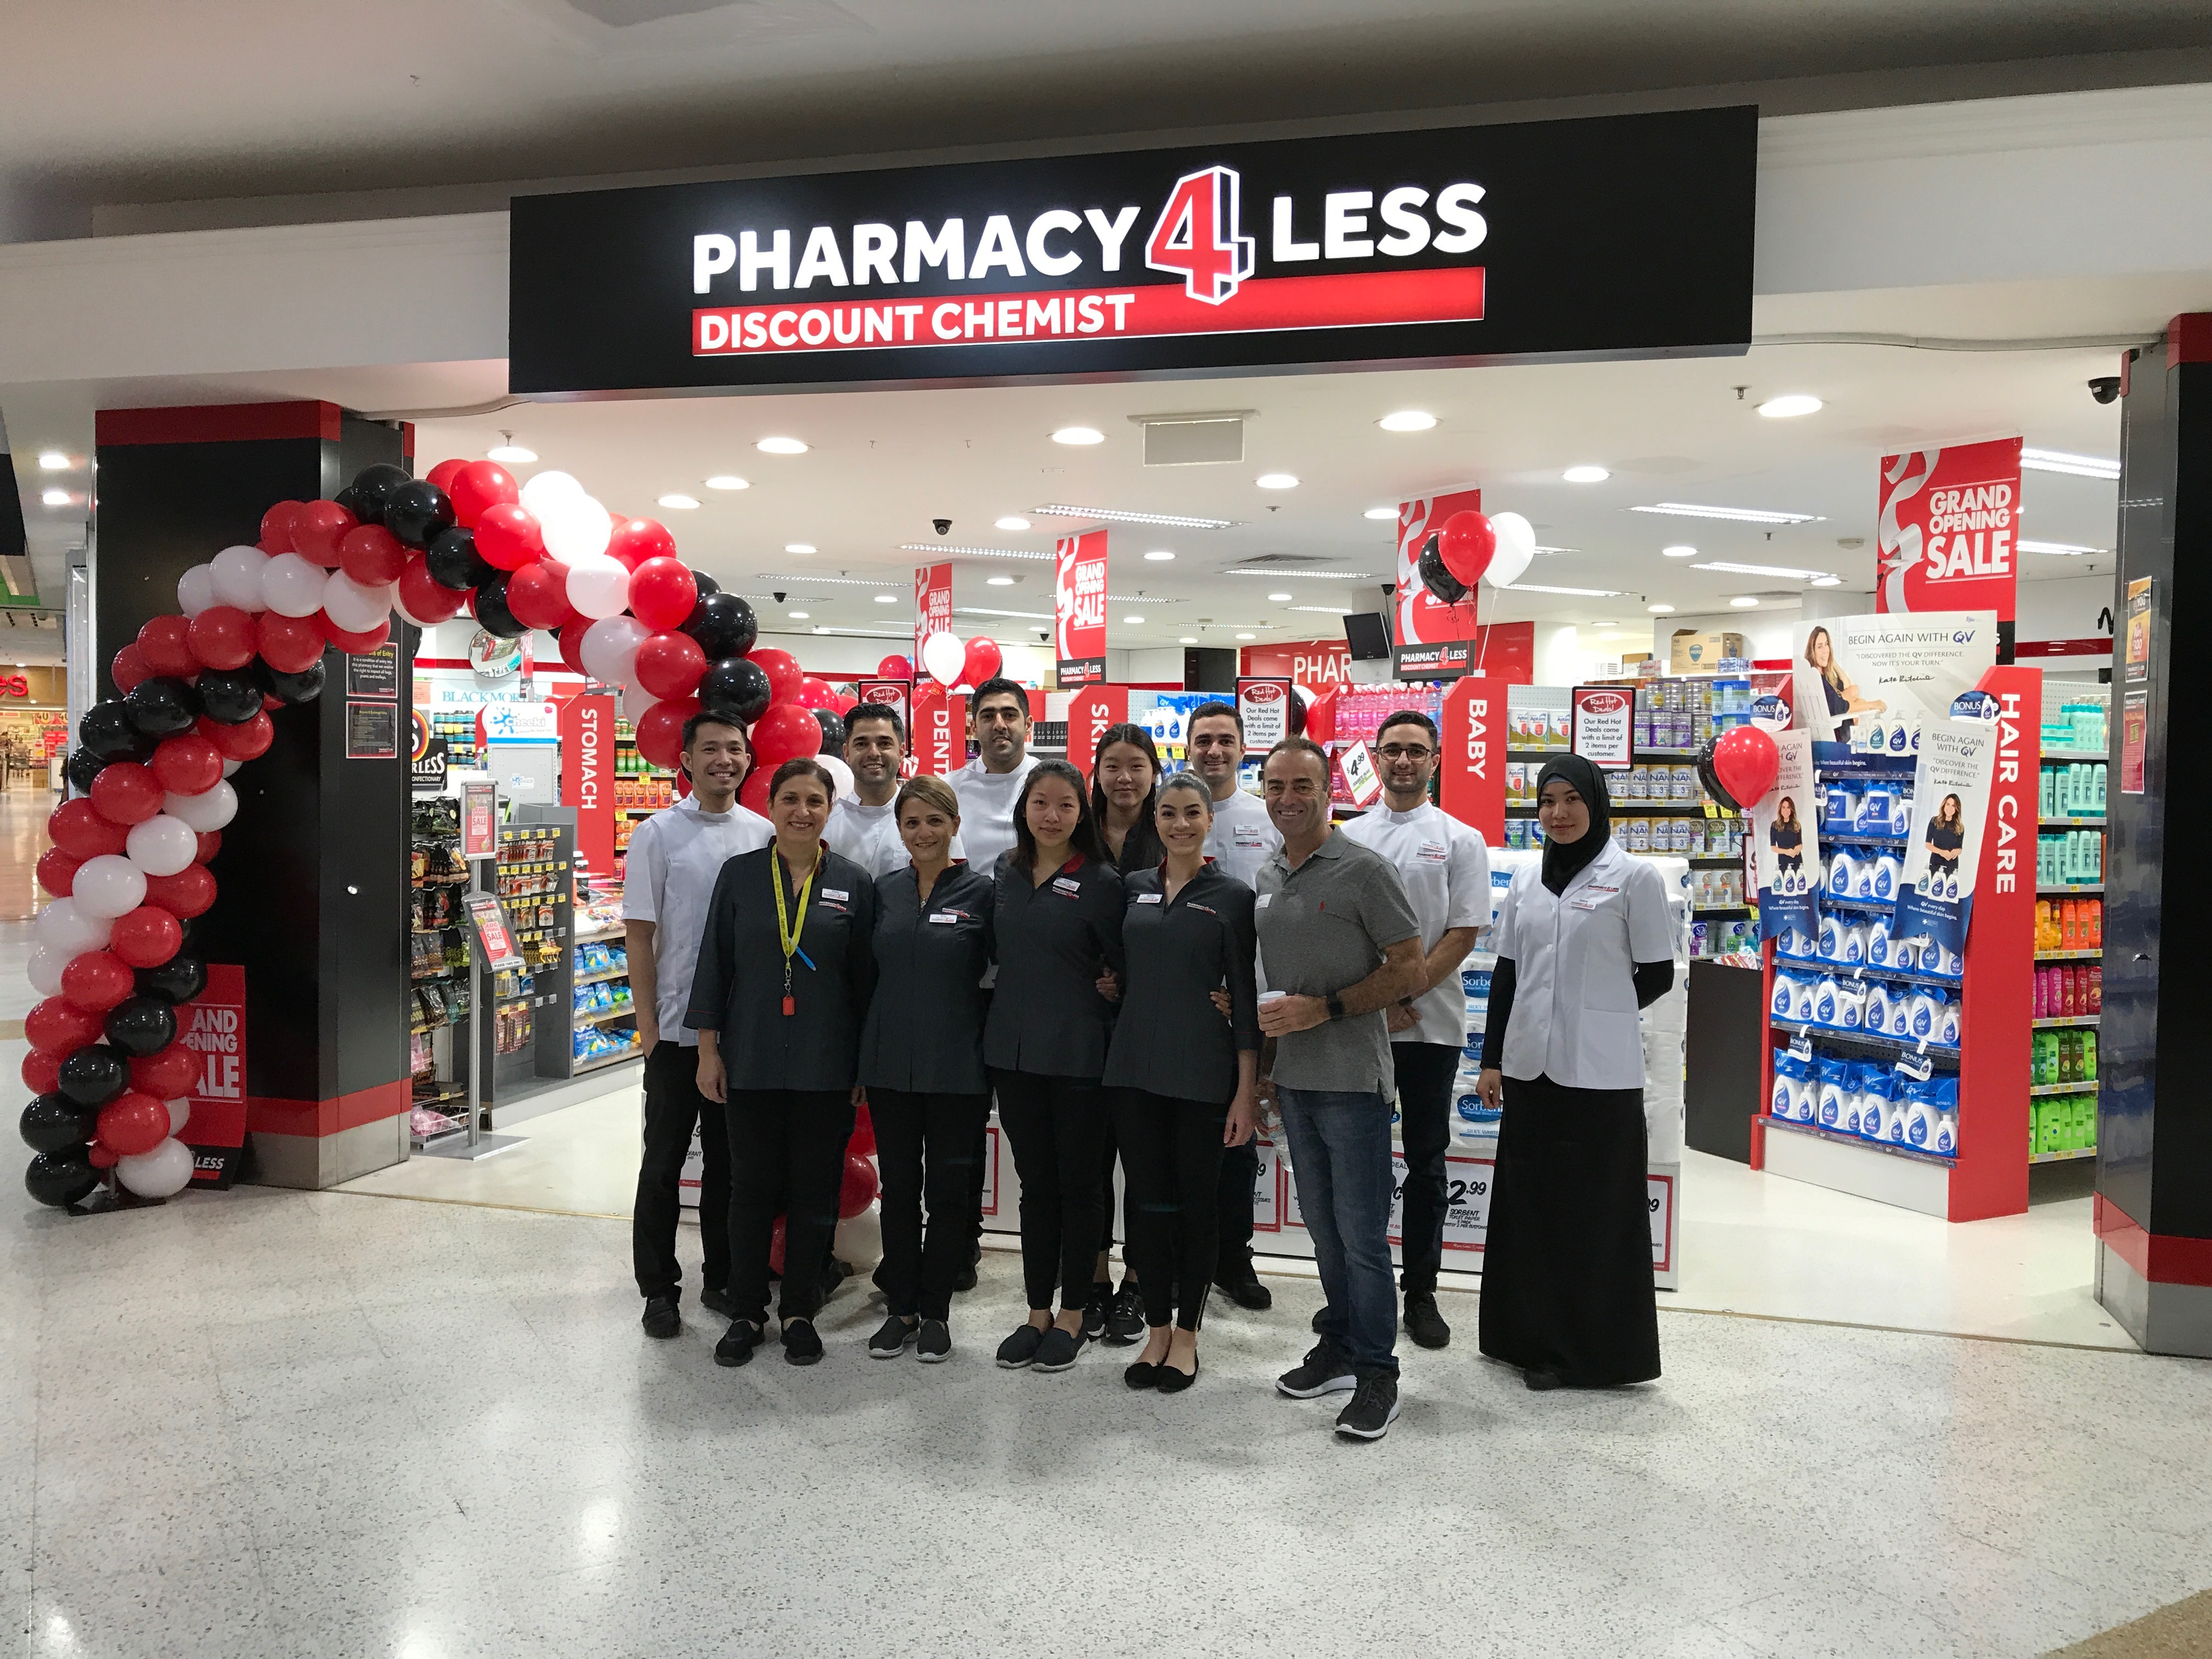 Pharmacy 4 Less at Westfield Burwood